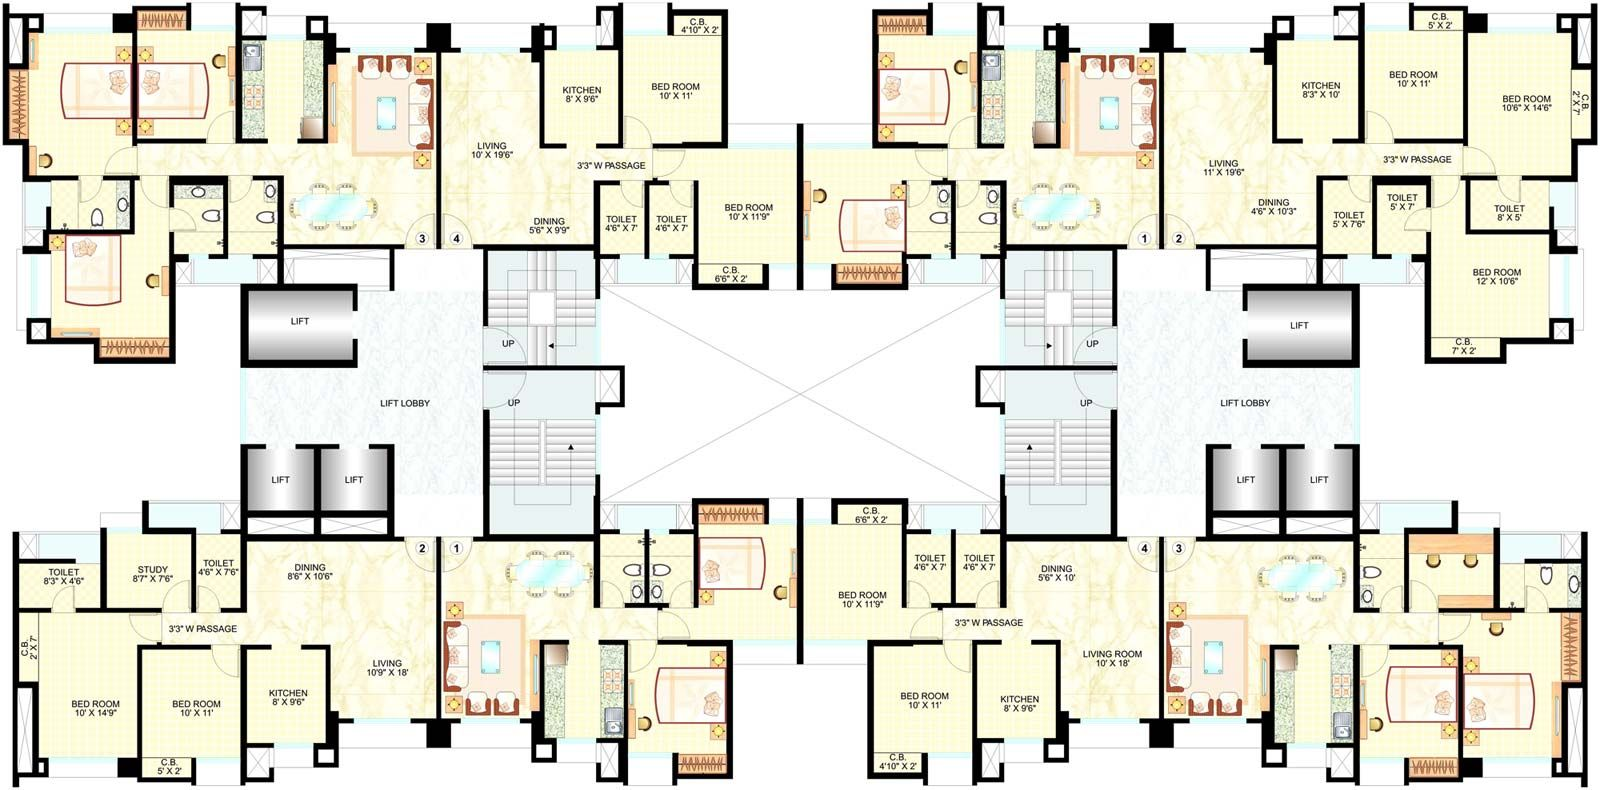 2 Bedroom Apartment Plans 2 Bedroom Apartment Floor Plans 1015822 Decorating Ideas